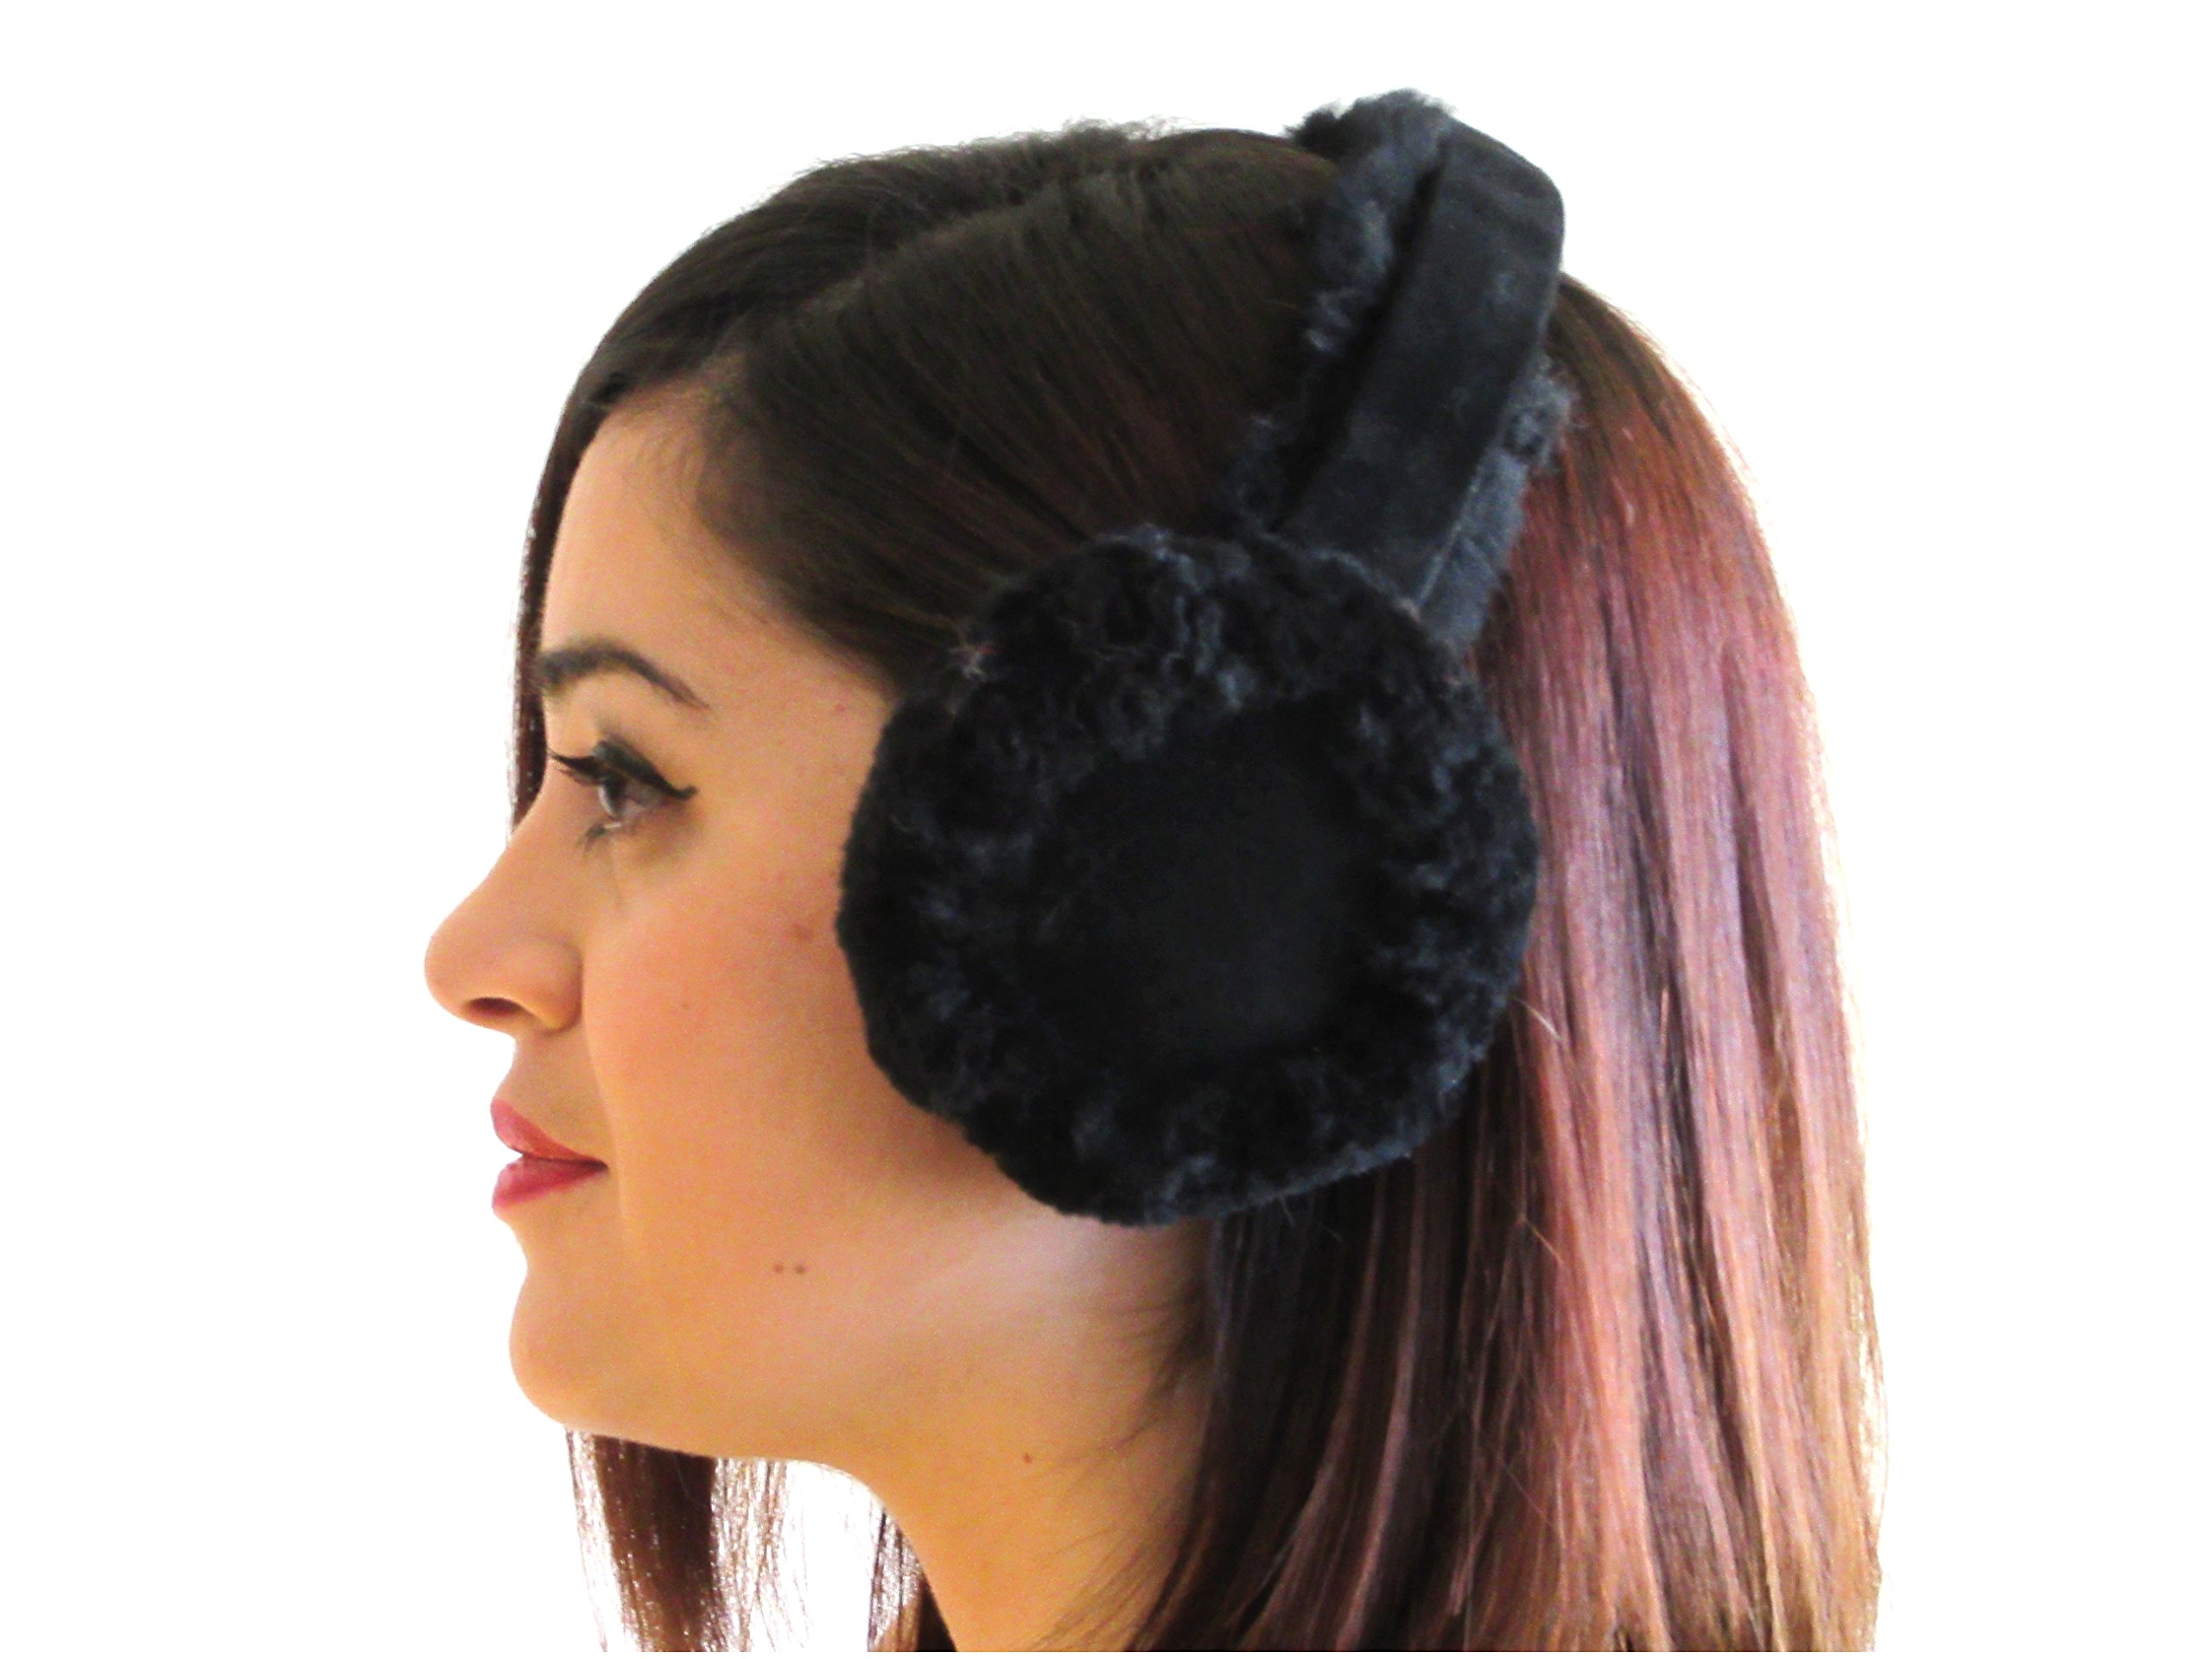 FursNewYork Black Shearling Sheepskin Ear Muffs with Shearling Suede Covered Band